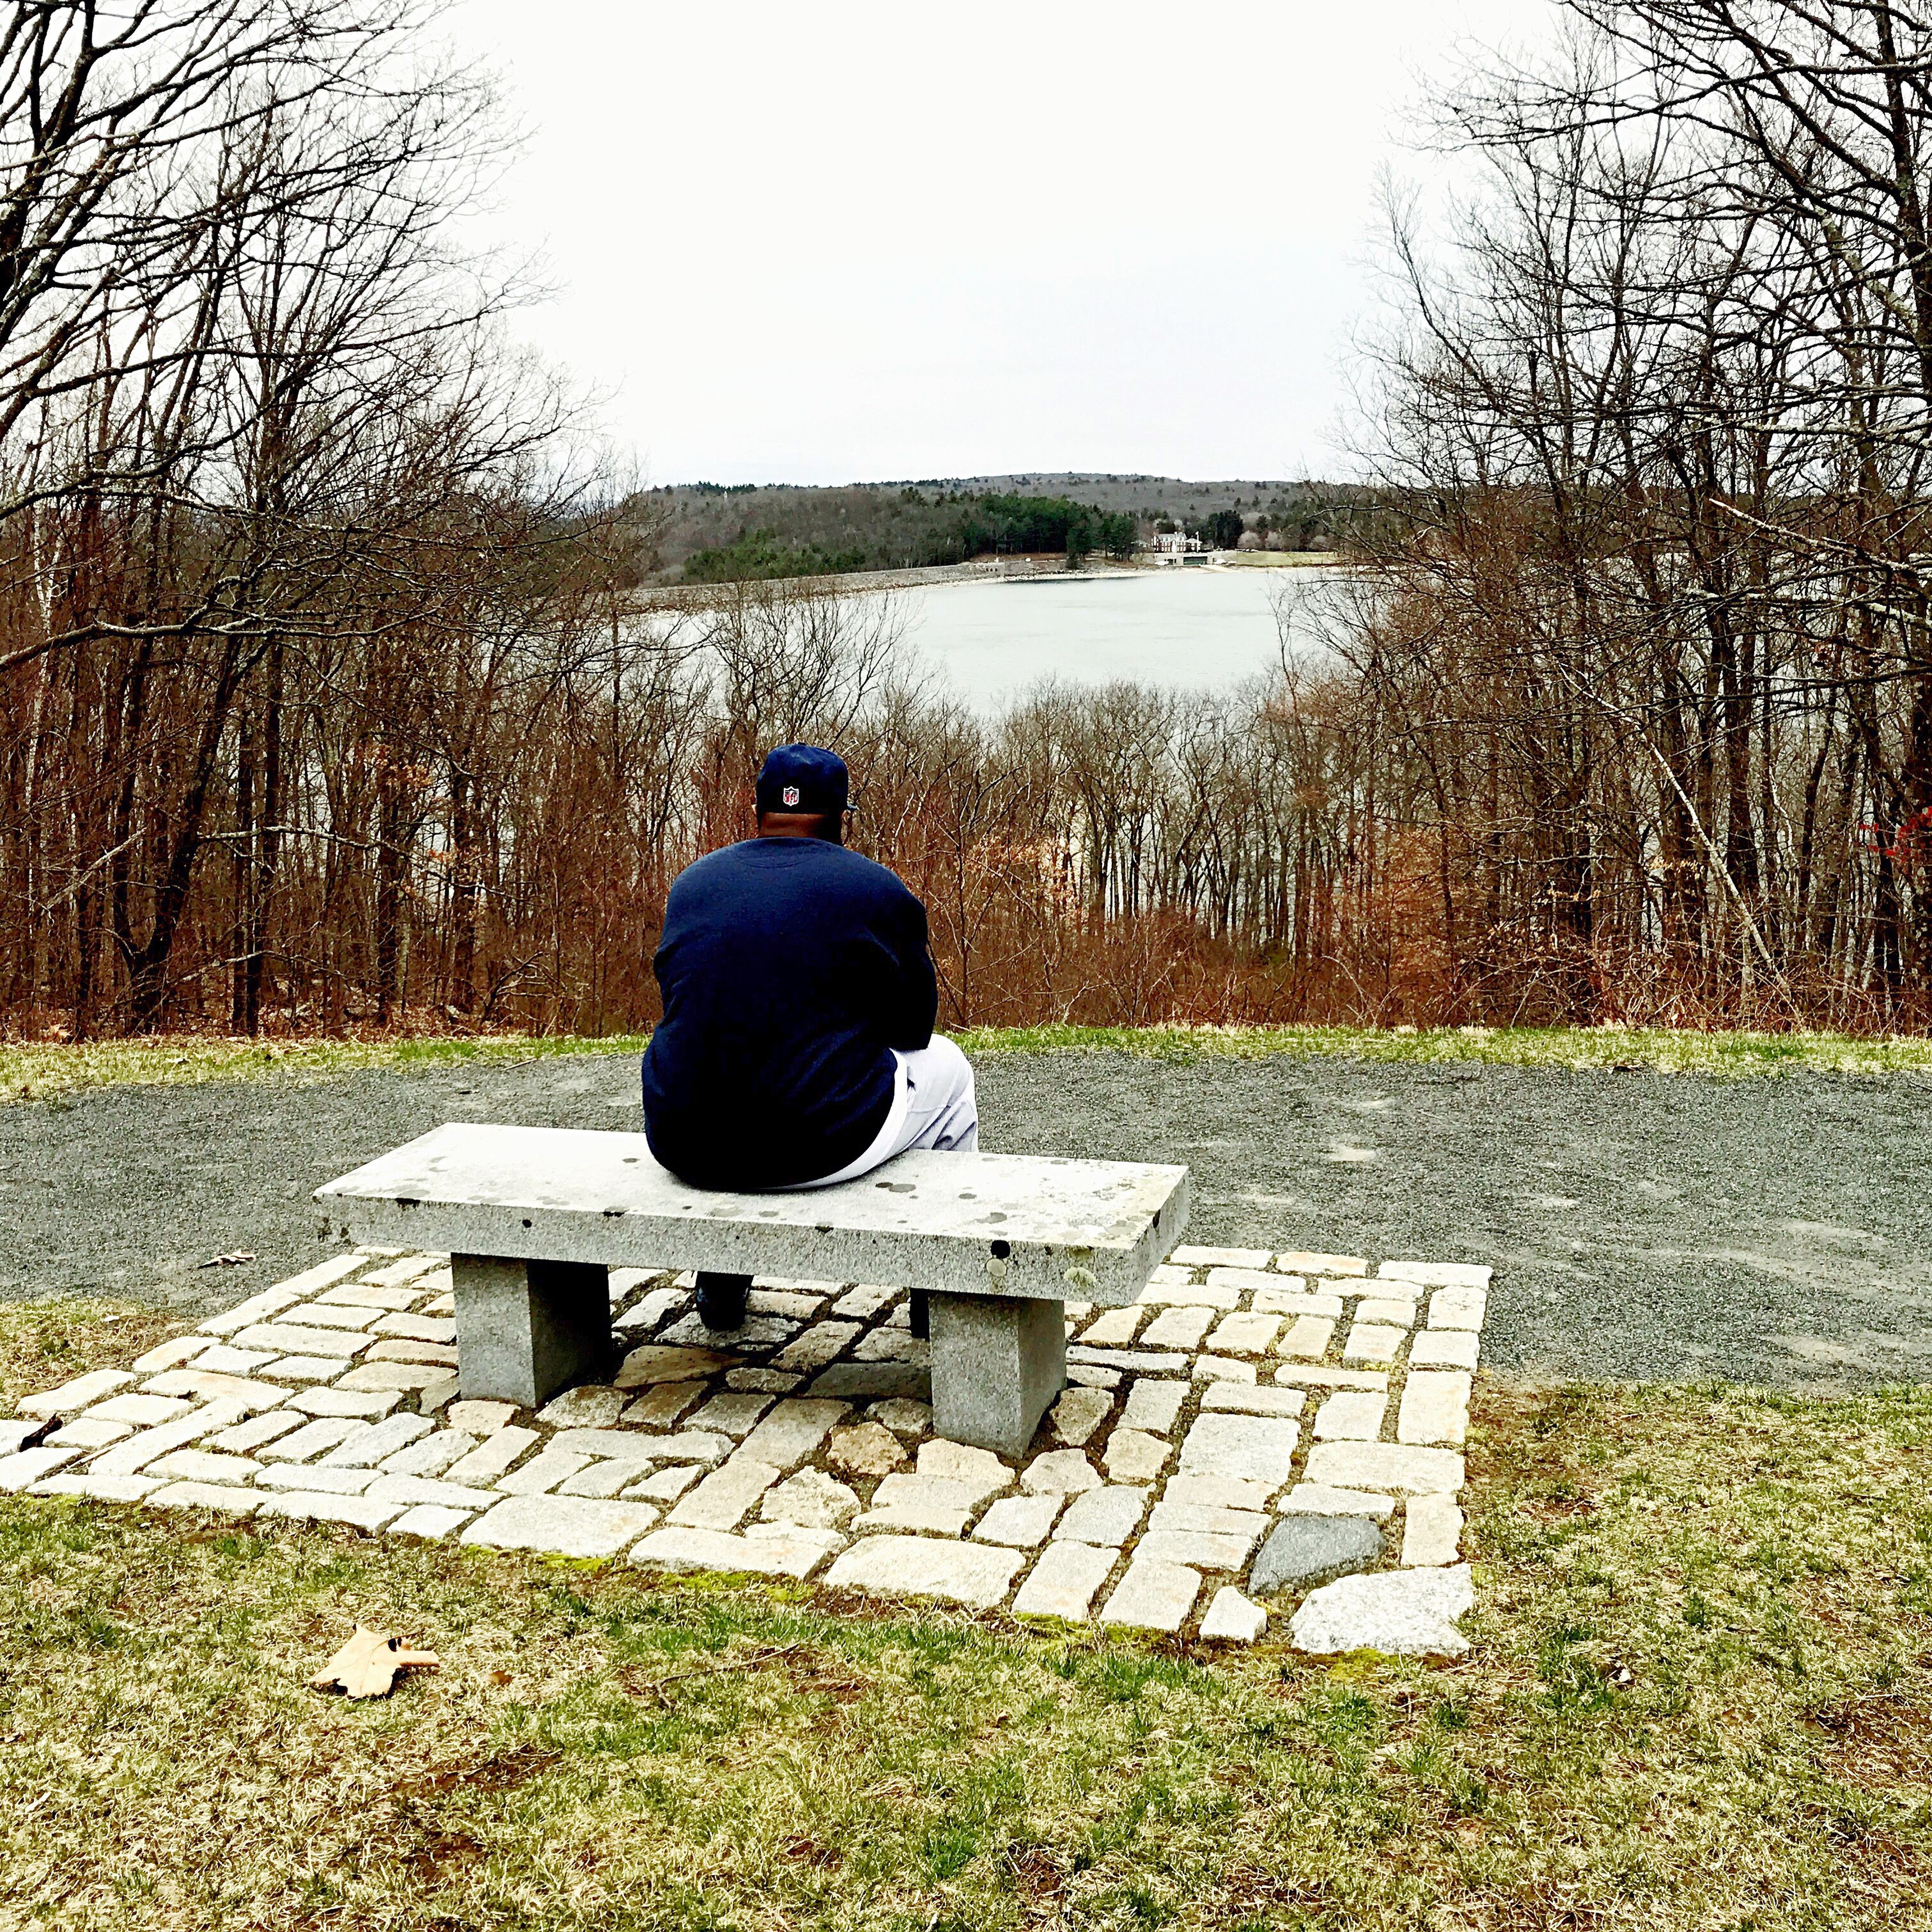 sitting, real people, one person, clear sky, rear view, sky, men, nature, full length, outdoors, day, beauty in nature, one man only, mammal, people